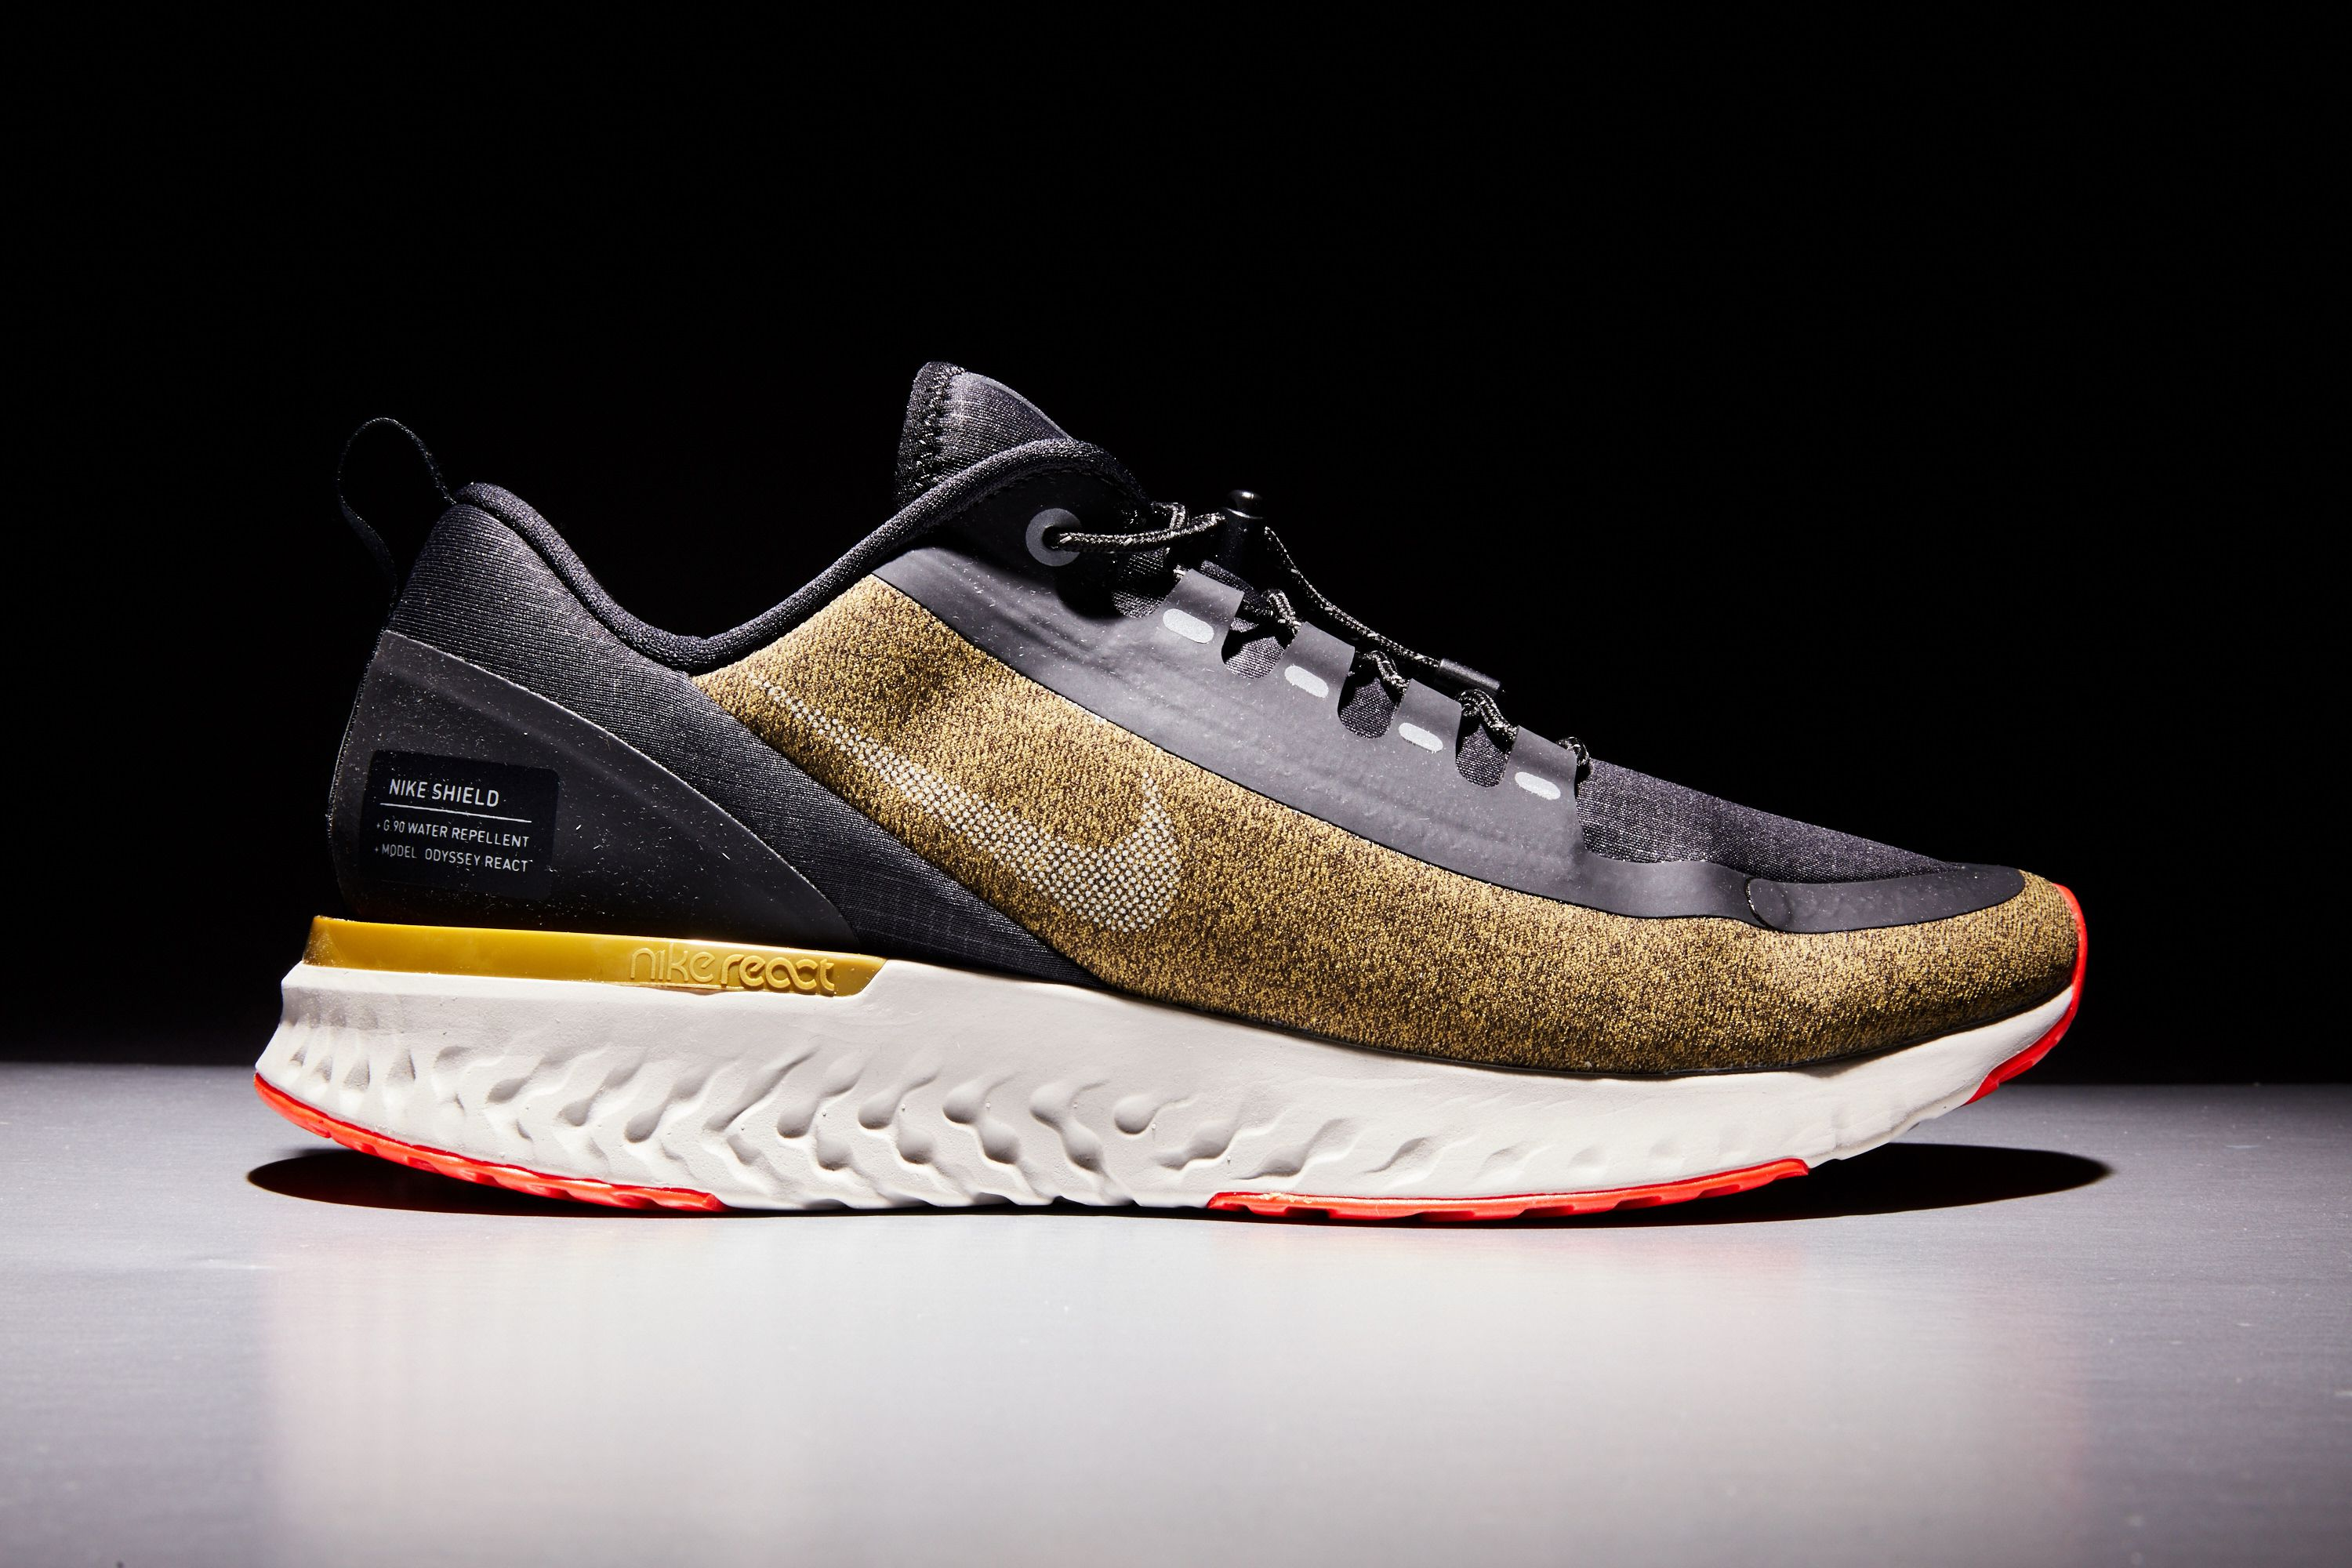 f1f29e3a6b0 Nike Odyssey React Shield Review 2019 - Waterproof Nikes